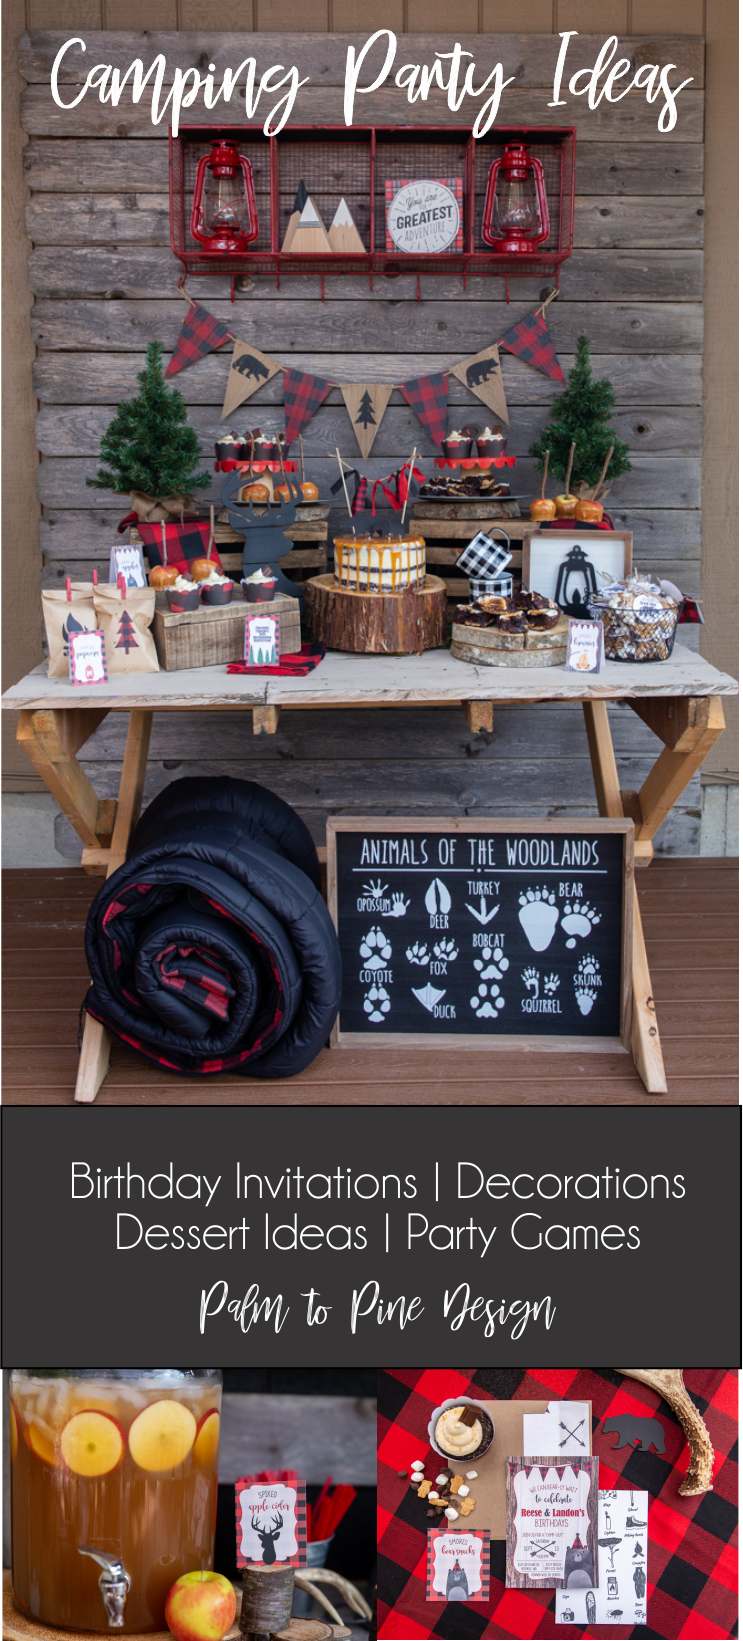 Camping Party Ideas, Decorations and dessert, lumberjack birthday party